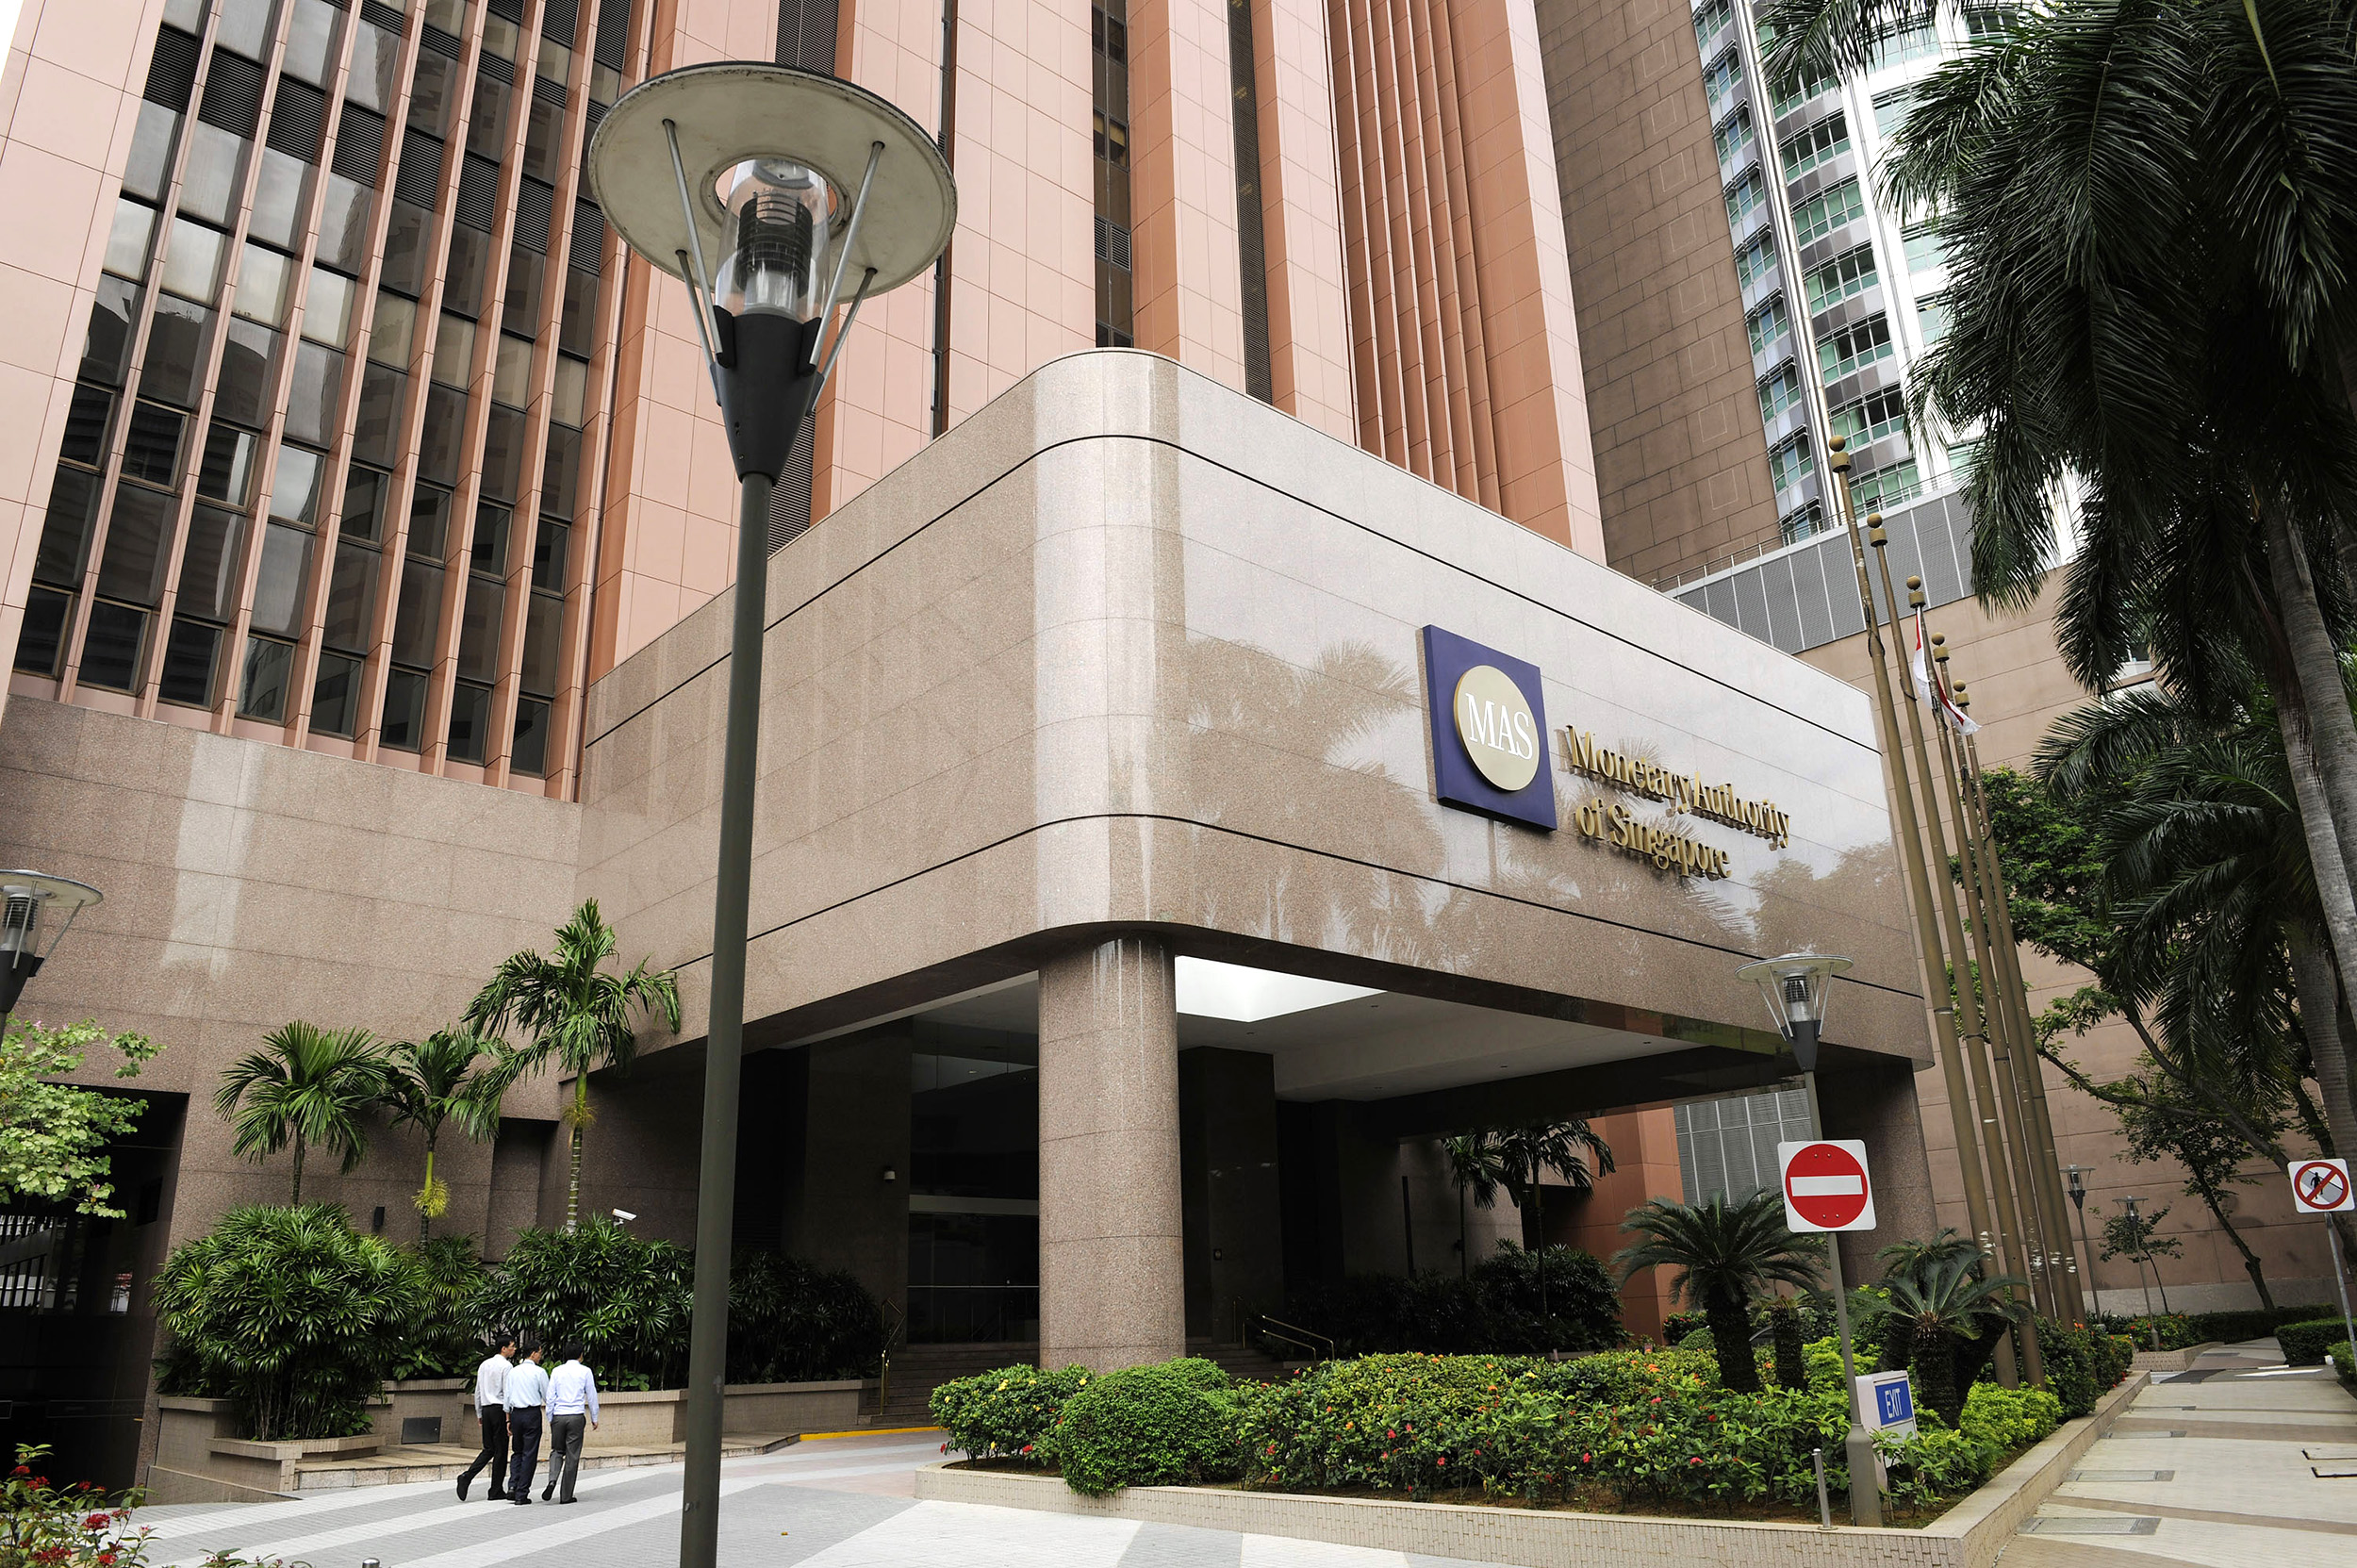 Monetary Authority of Singapore (MAS) announced an extension to the existing industry-wide loan repayment support measures for SMEs which have been impacted by the COVID-19 pandemic.